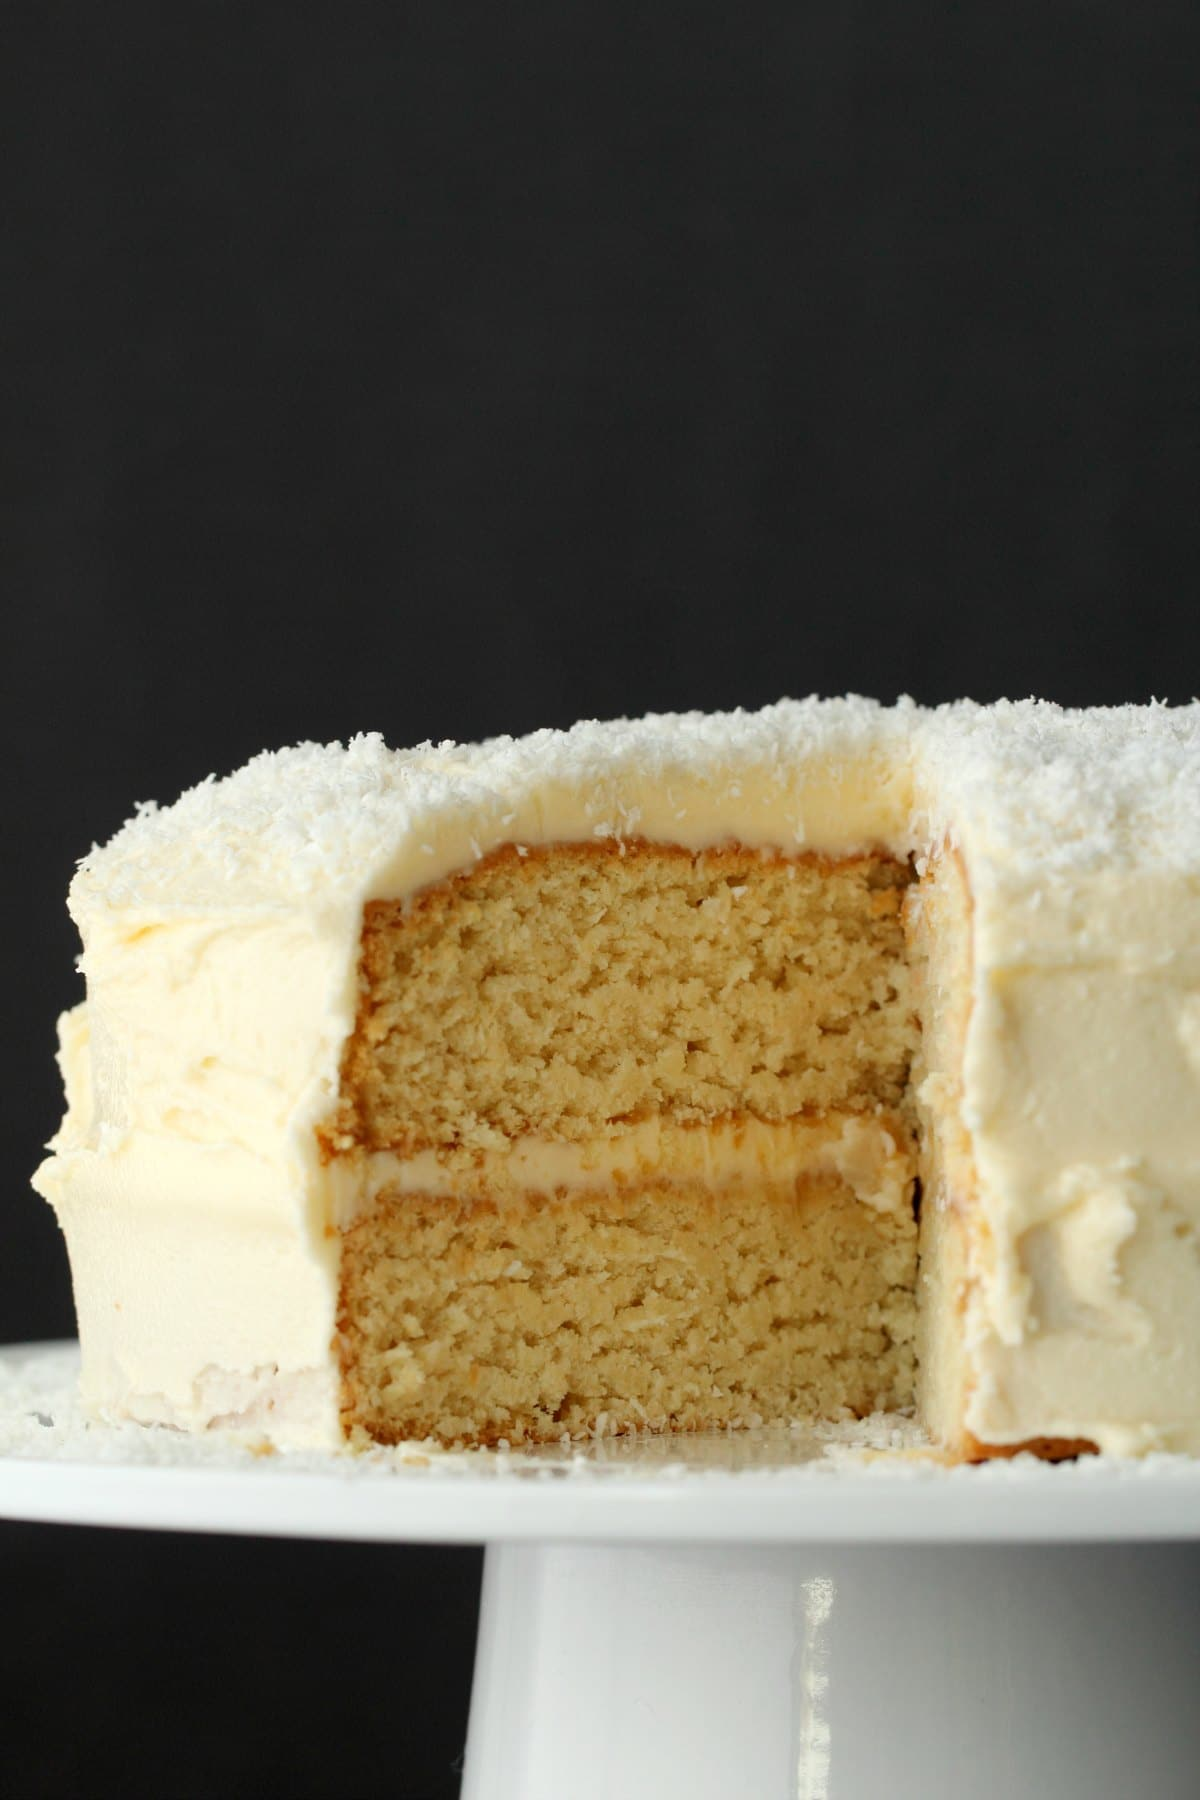 Vegan Coconut Cake on a white cake stand with one slice missing showing the inside of the cake.